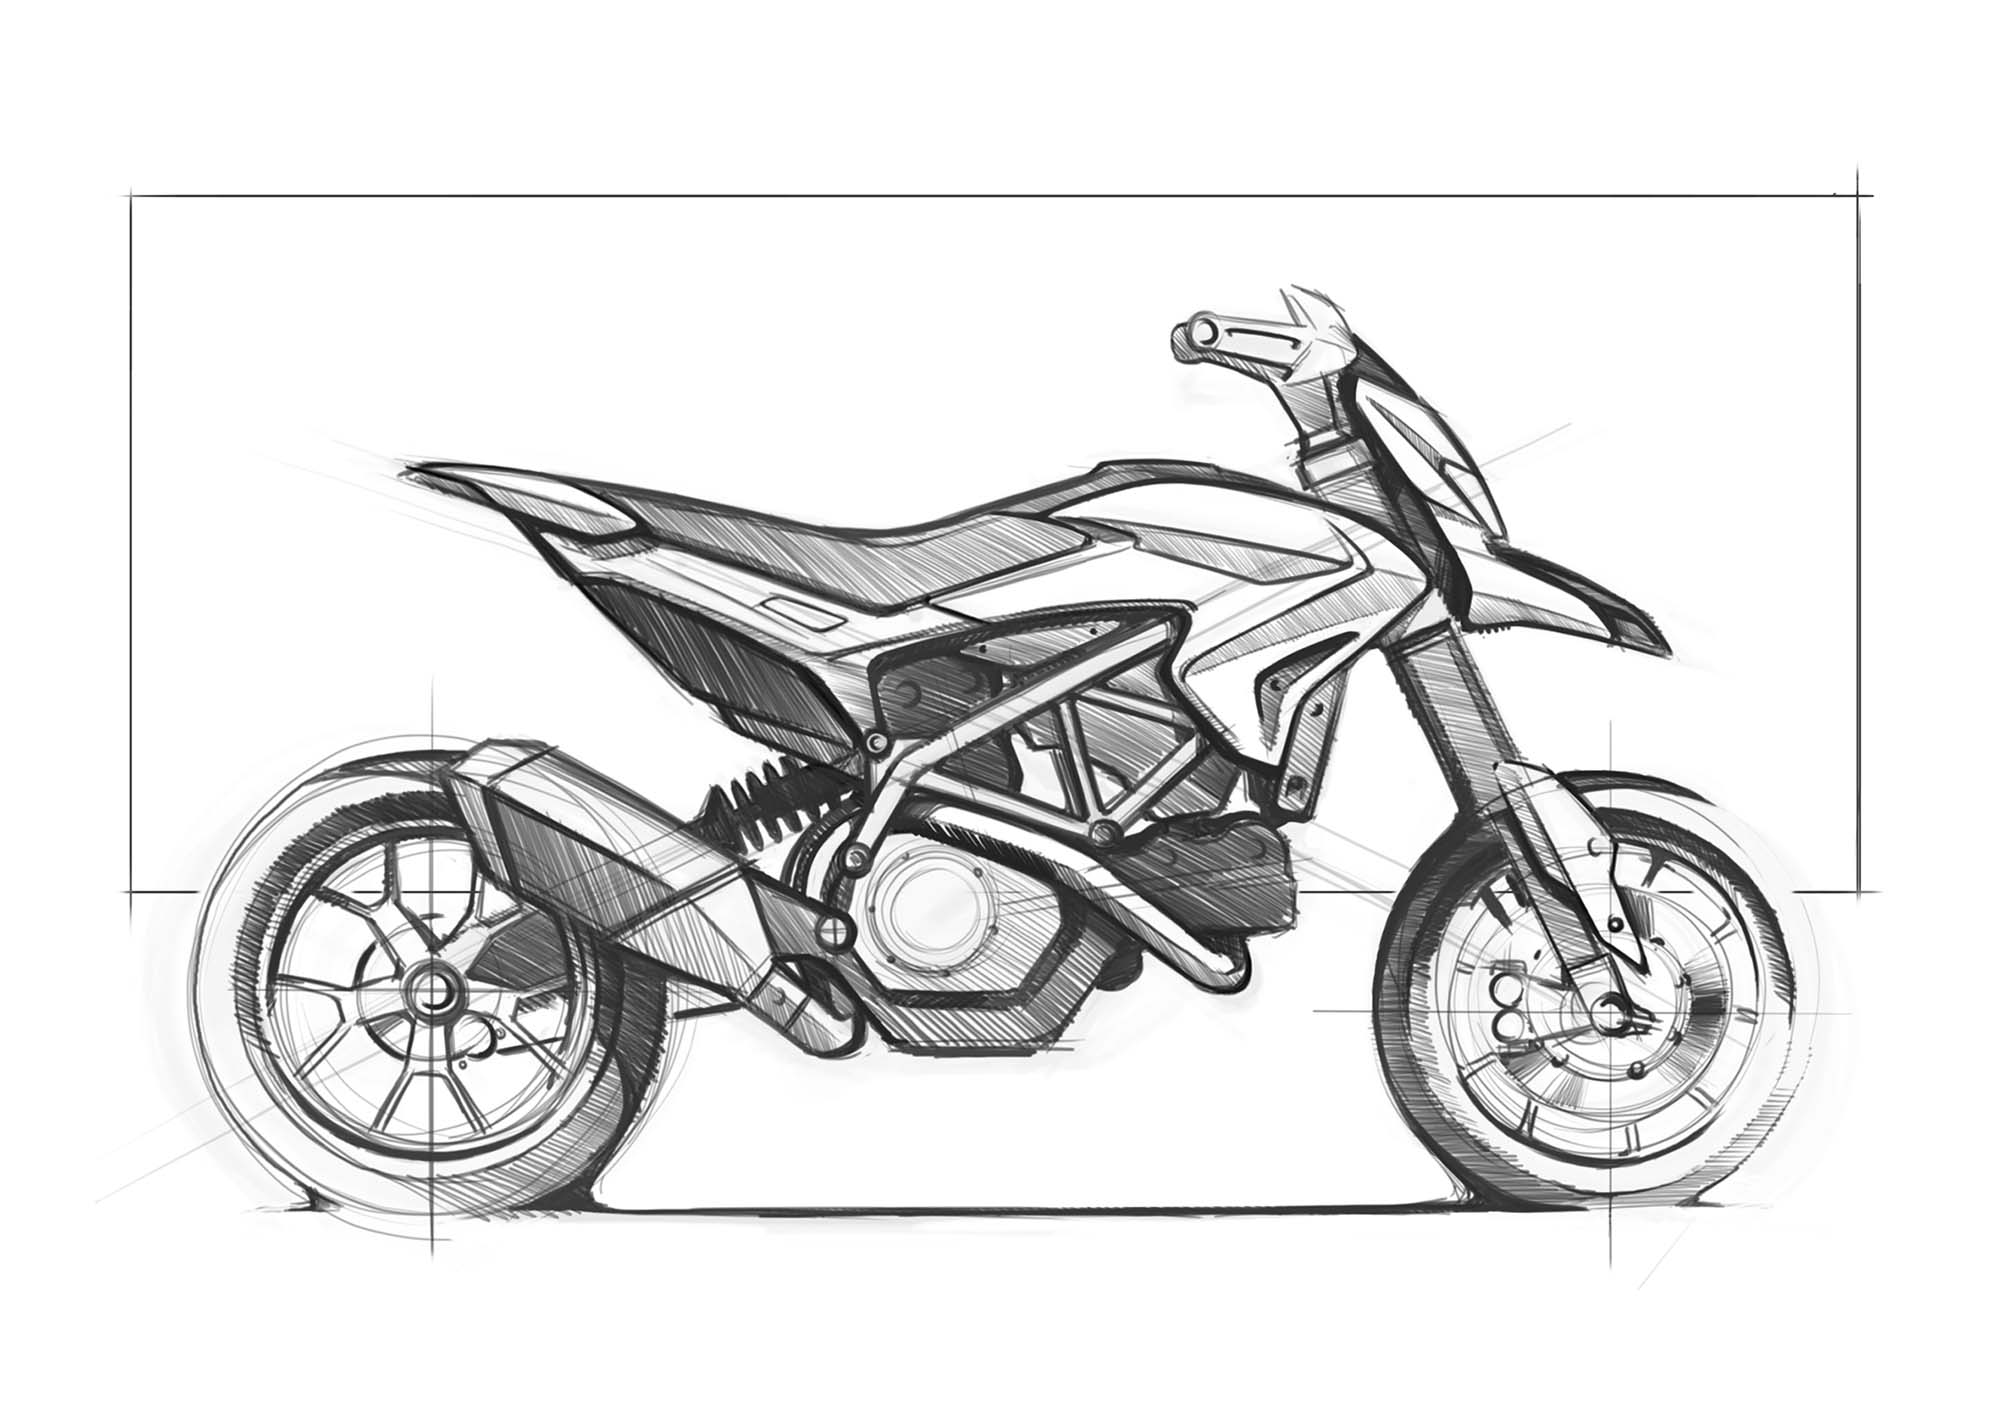 New 937cc Ducati Hypermotard 939 Outed For